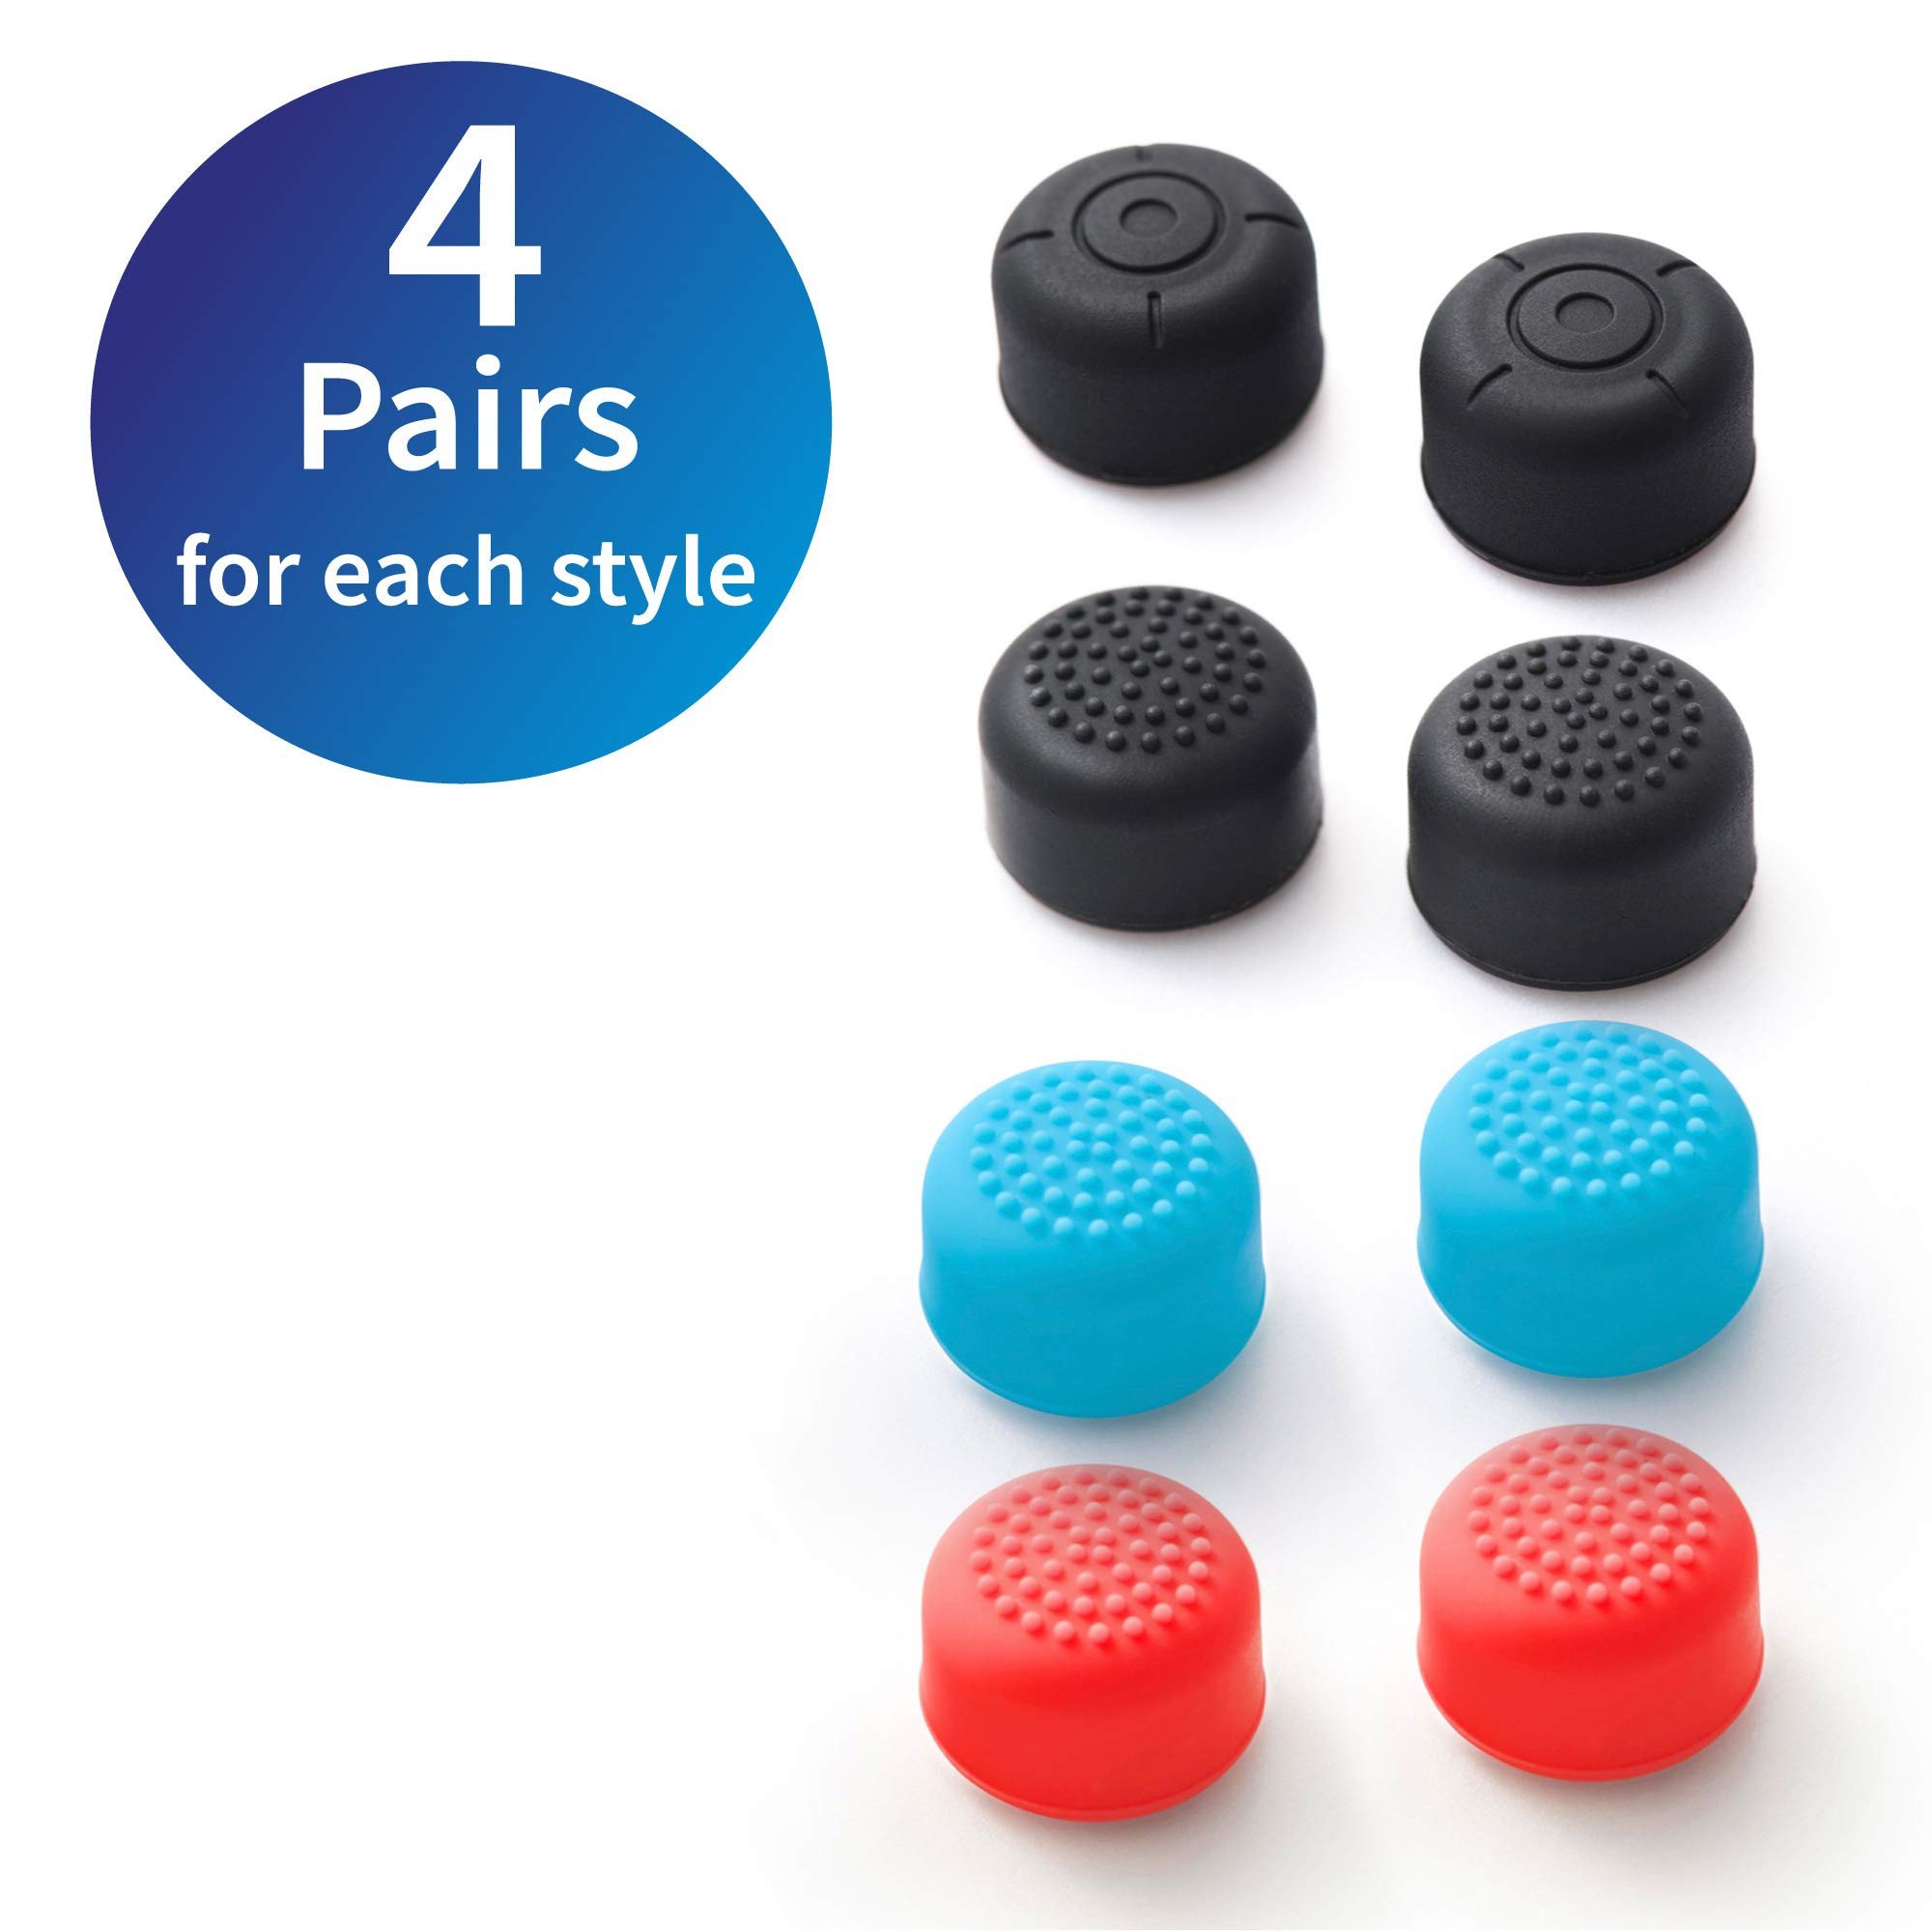 16 Pairs Joy Con Thumb Grips for Switch, Insten 32pcs (16-Pair) Soft Silicone Precision Raised ThumbStick Joystick Analog Stick Caps Set Compatible with Nintendo Switch Joy-con Controller Button by INSTEN